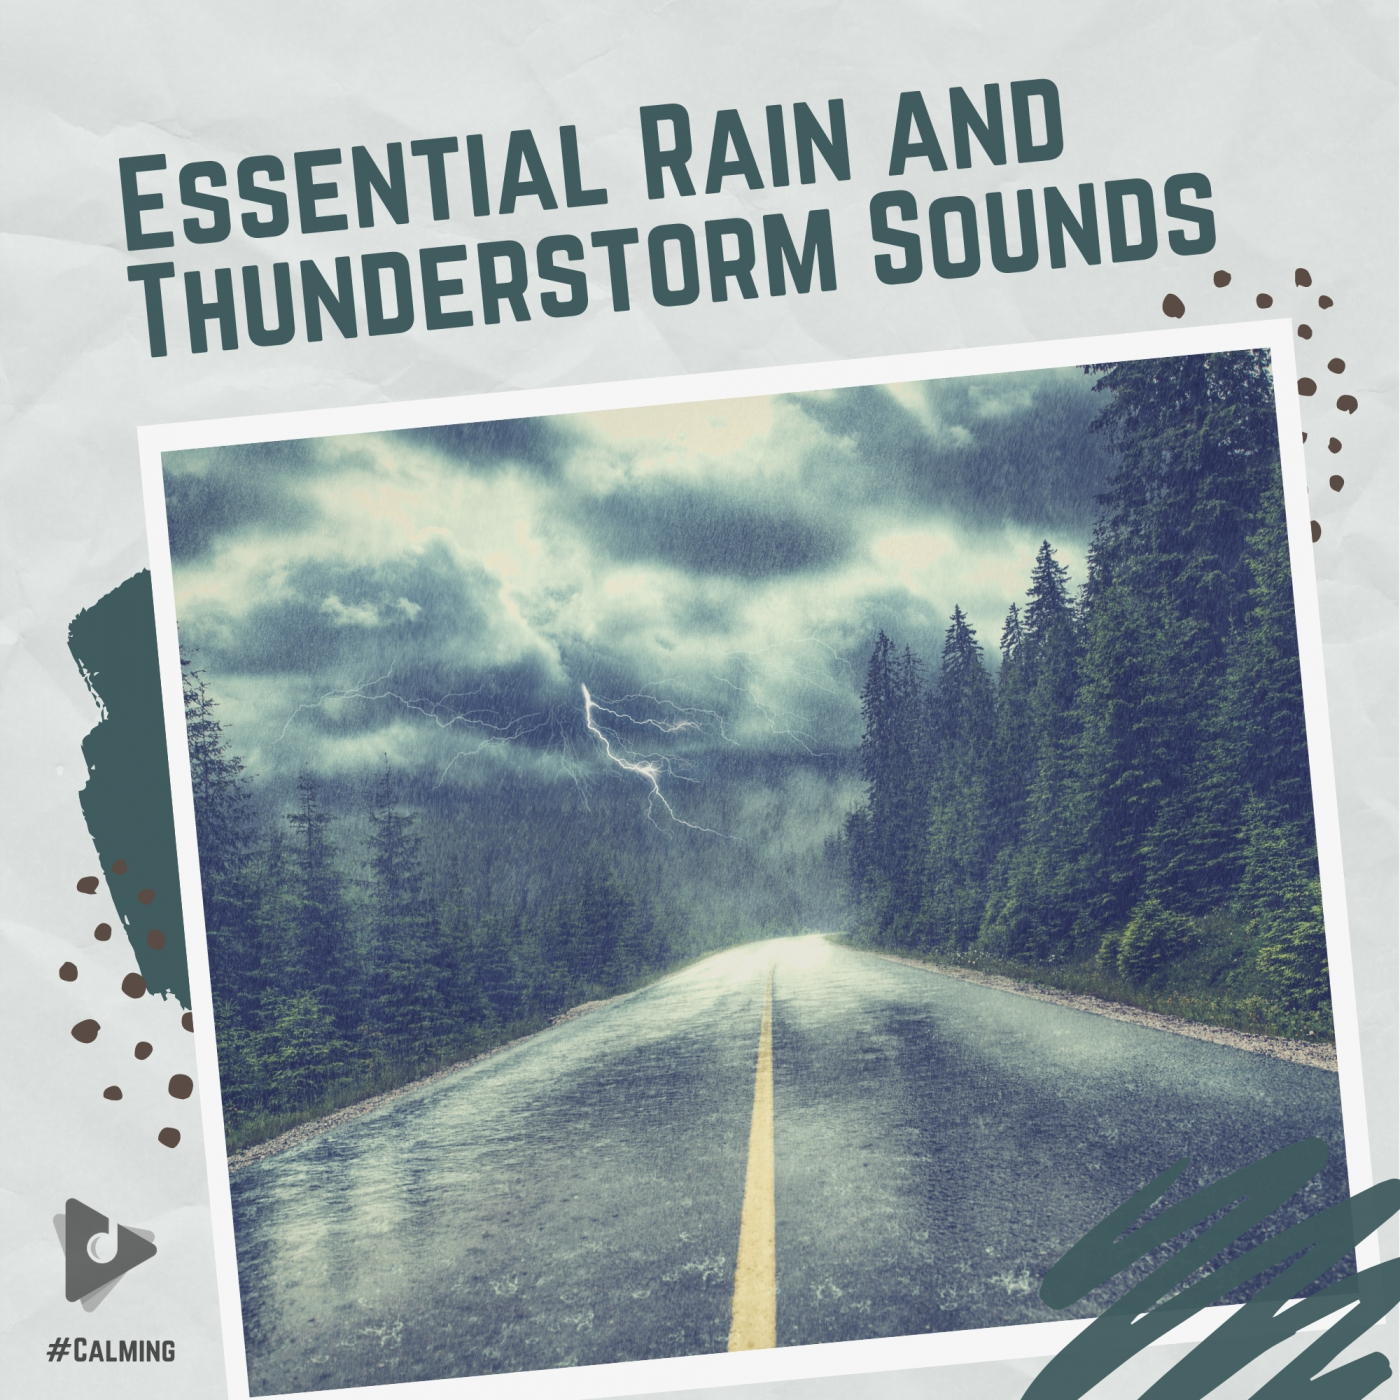 Essential Rain and Thunderstorm Sounds